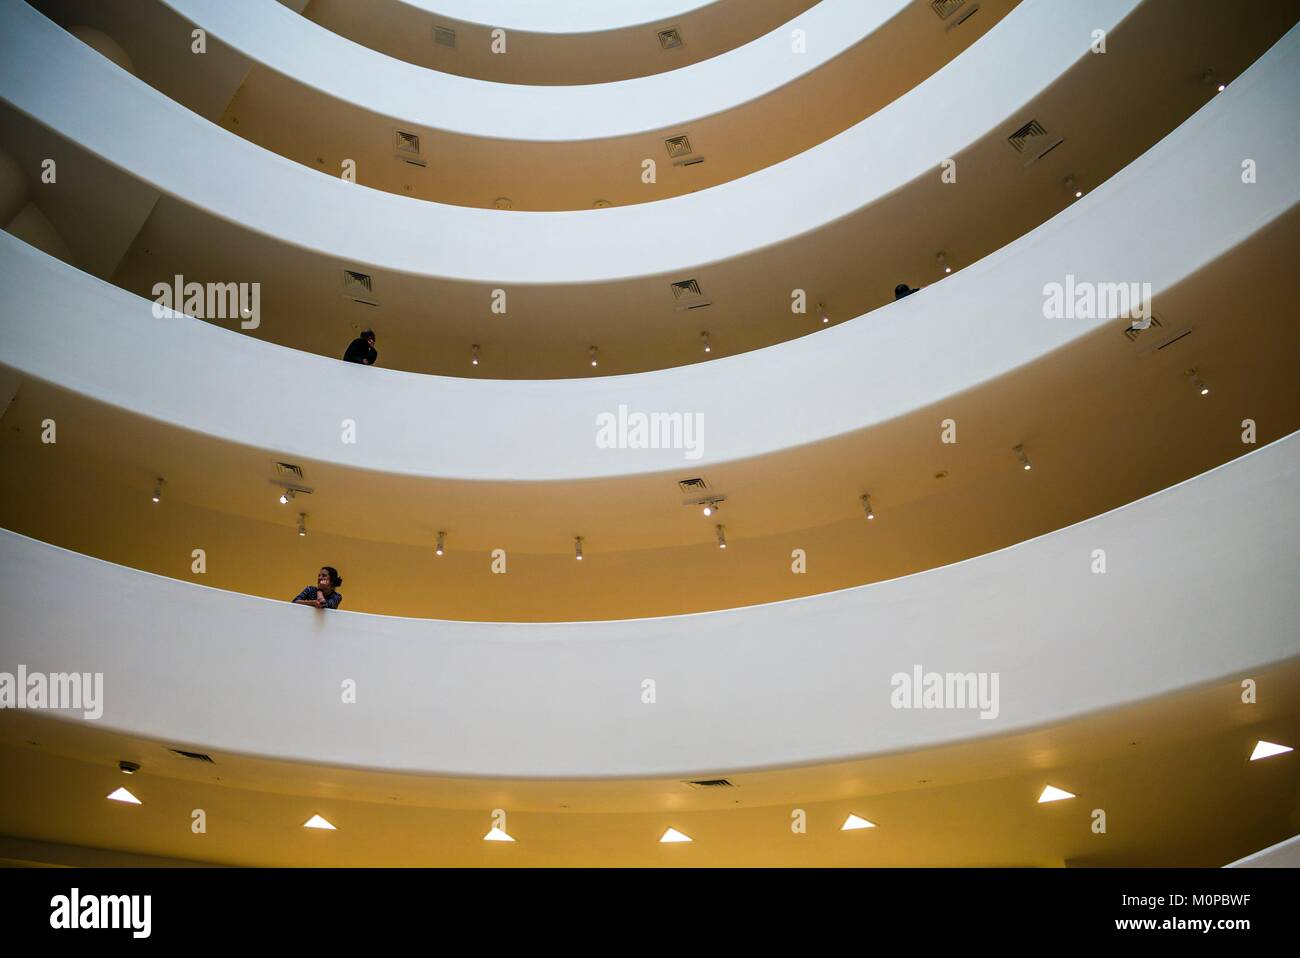 United States, New York, New York City, in der Upper East Side, Guggenheim Museum, Lobby innen Stockbild